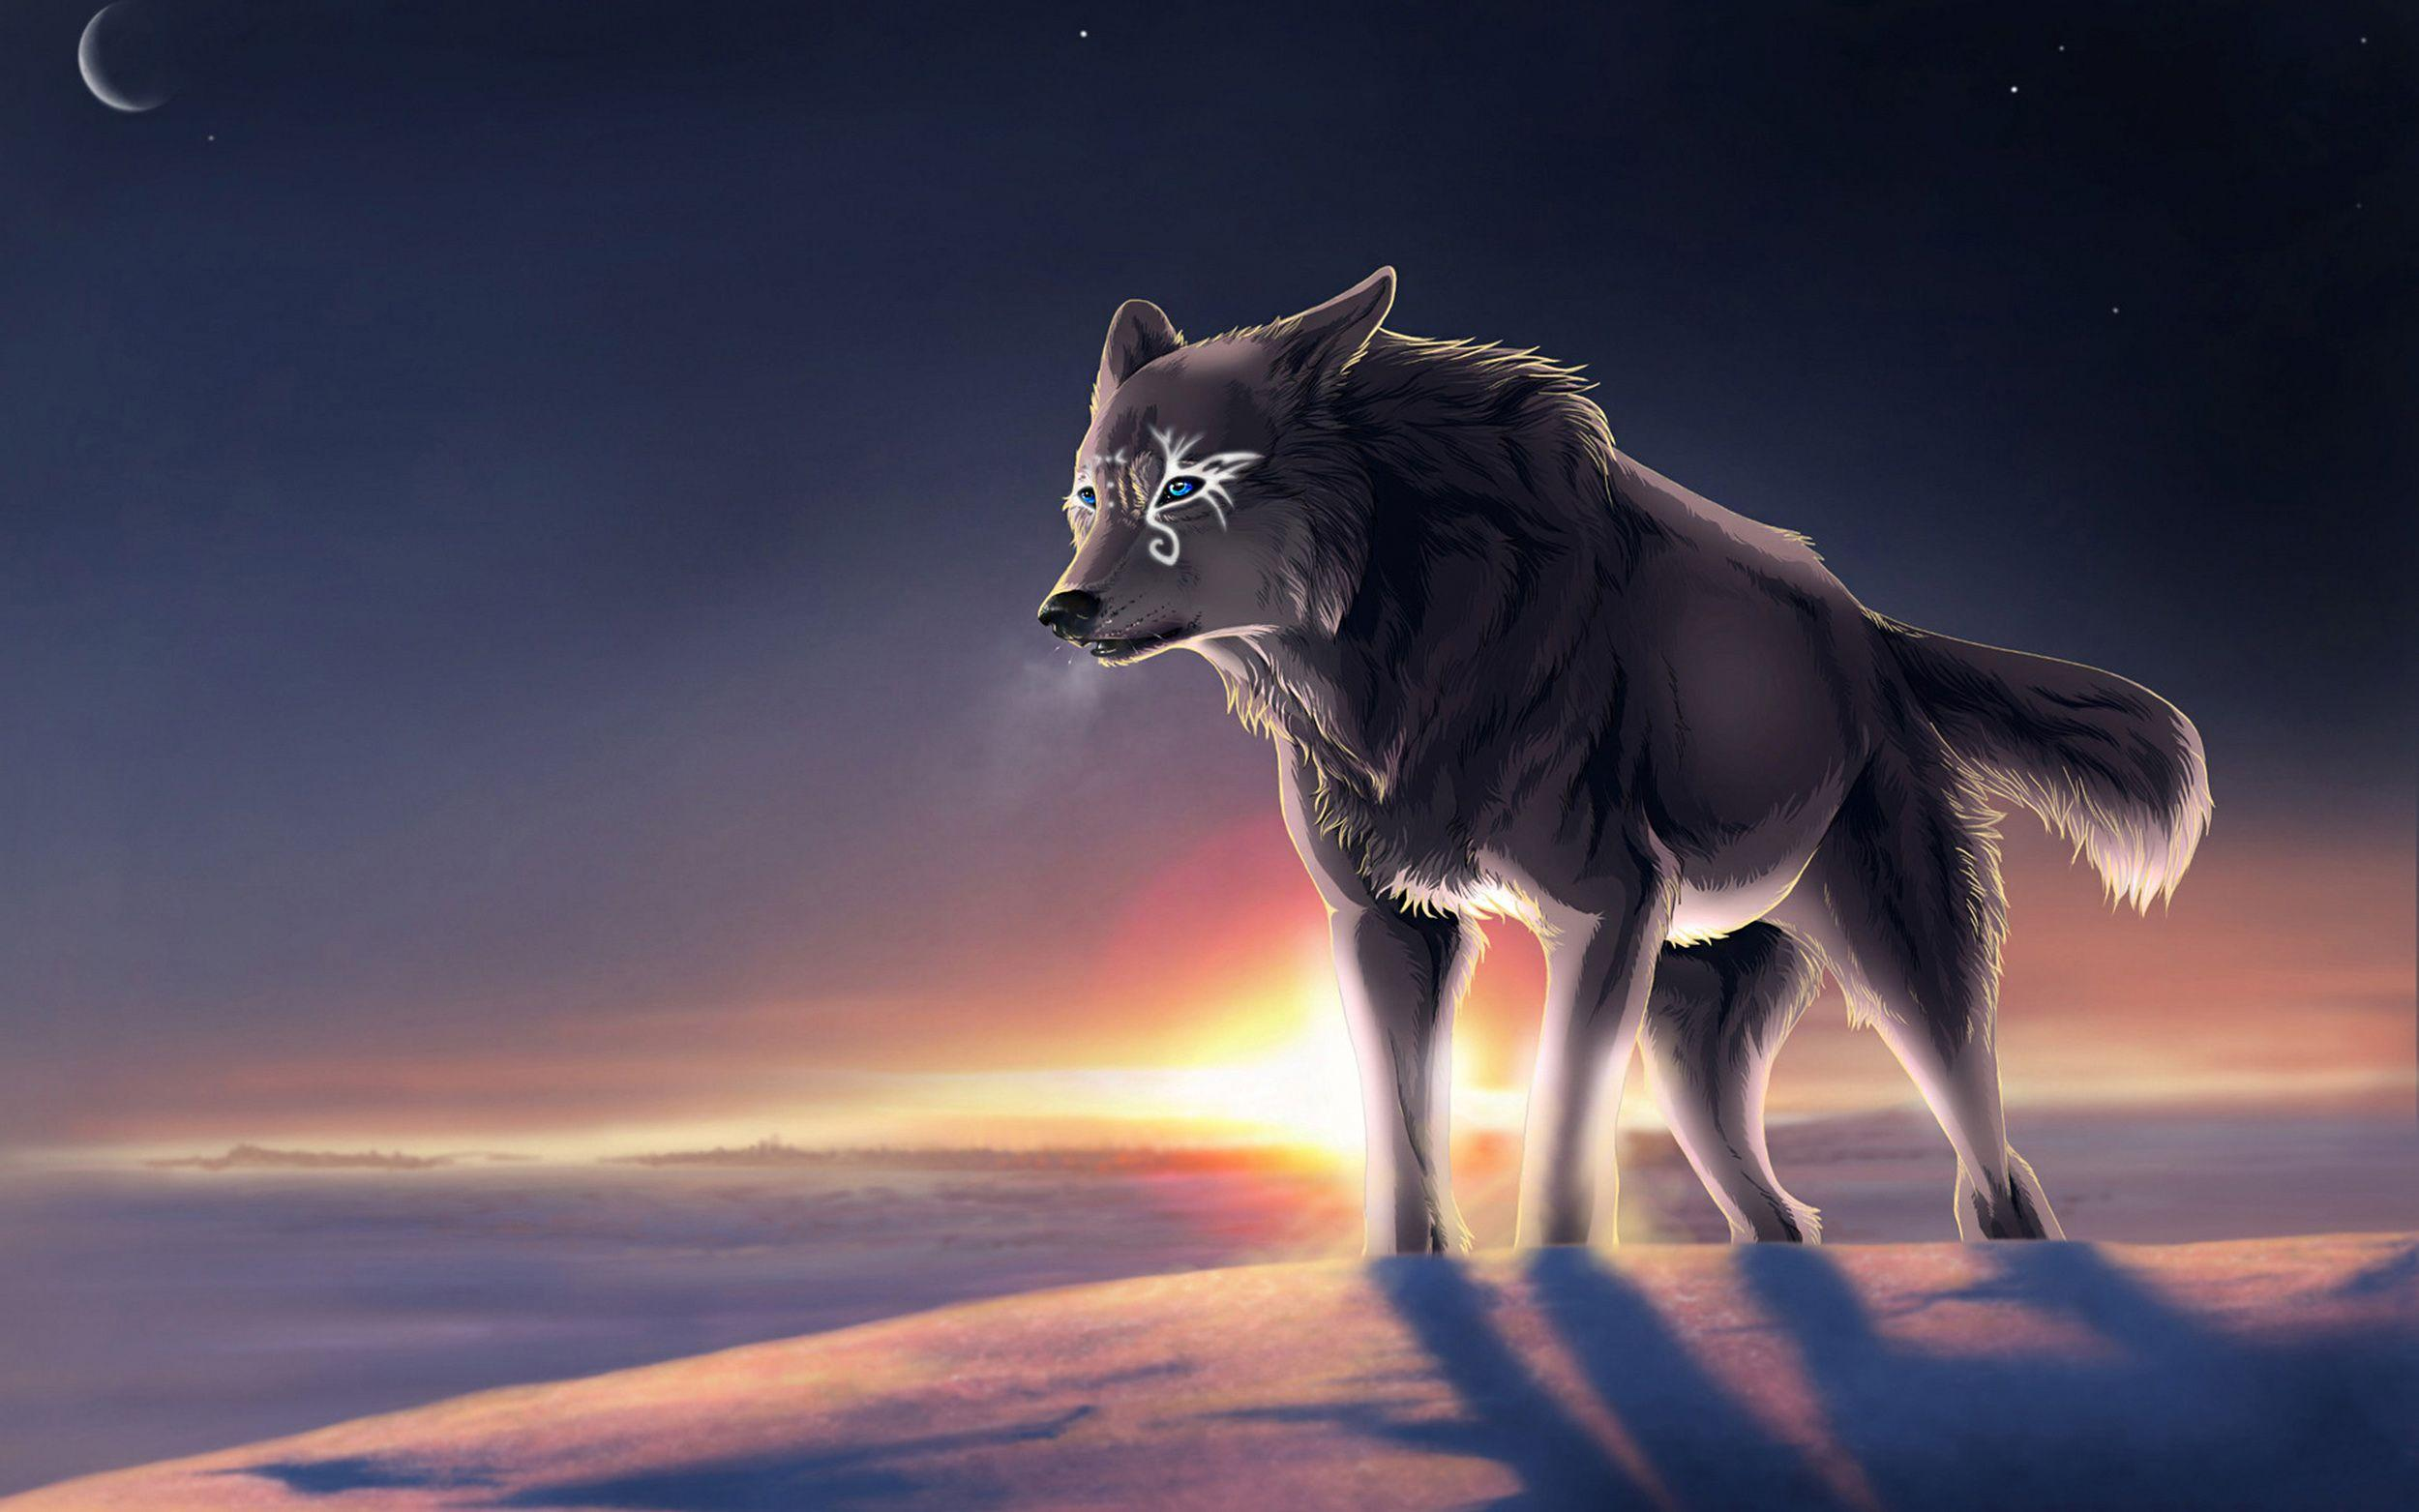 Alone Anime Wolf Wallpaper Dreamlovewallpapers